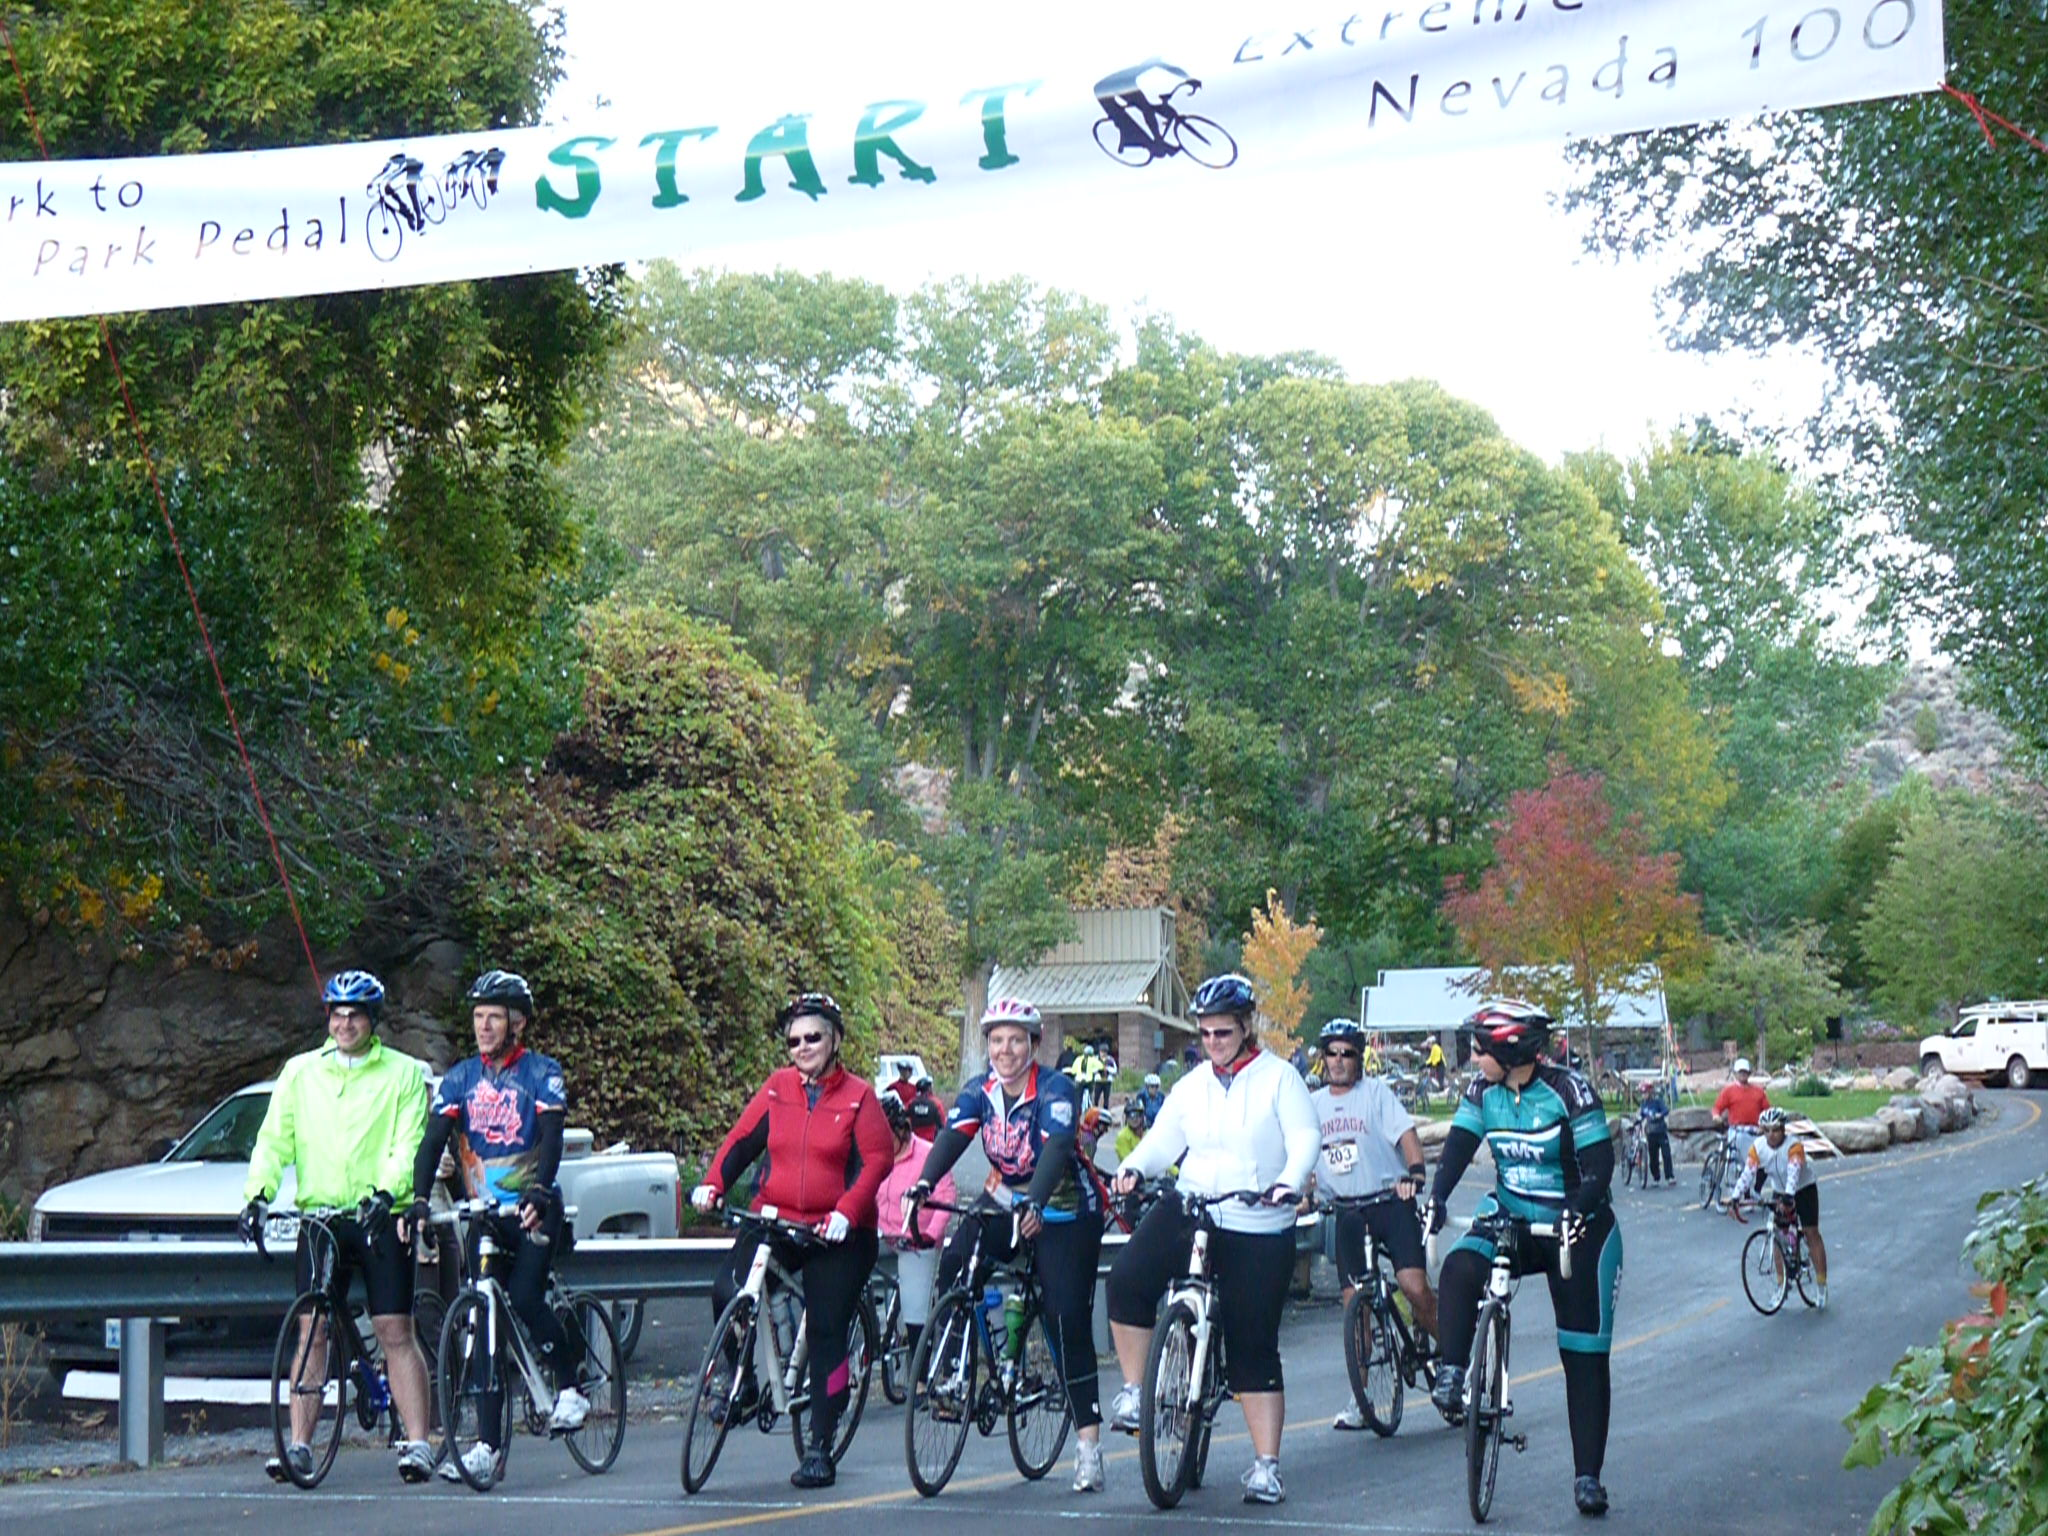 Park to Pedal event set